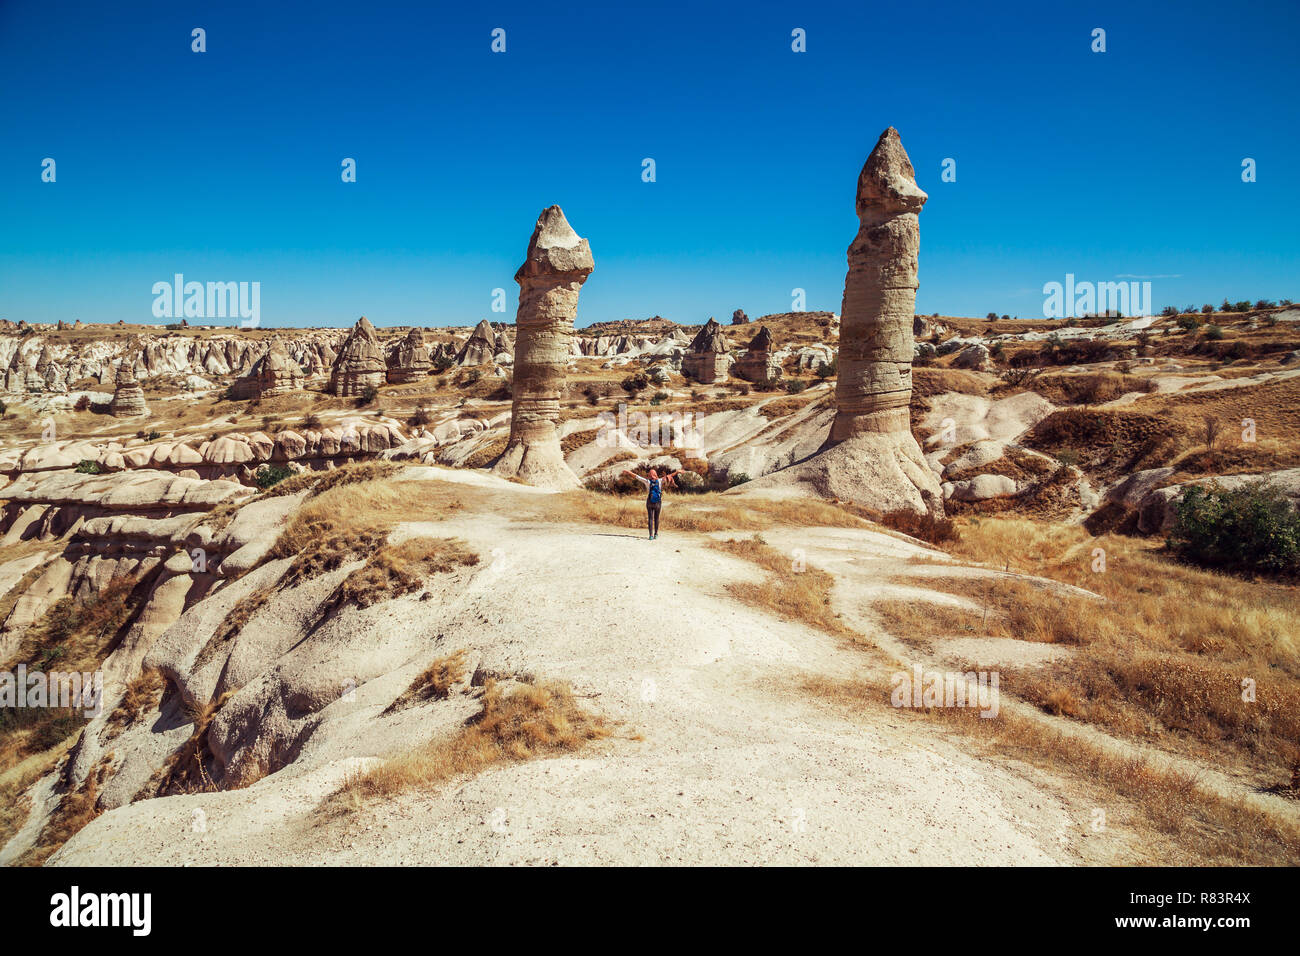 Tourist girl in central Turkey. The unearthly landscape of Cappadocia. - Stock Image